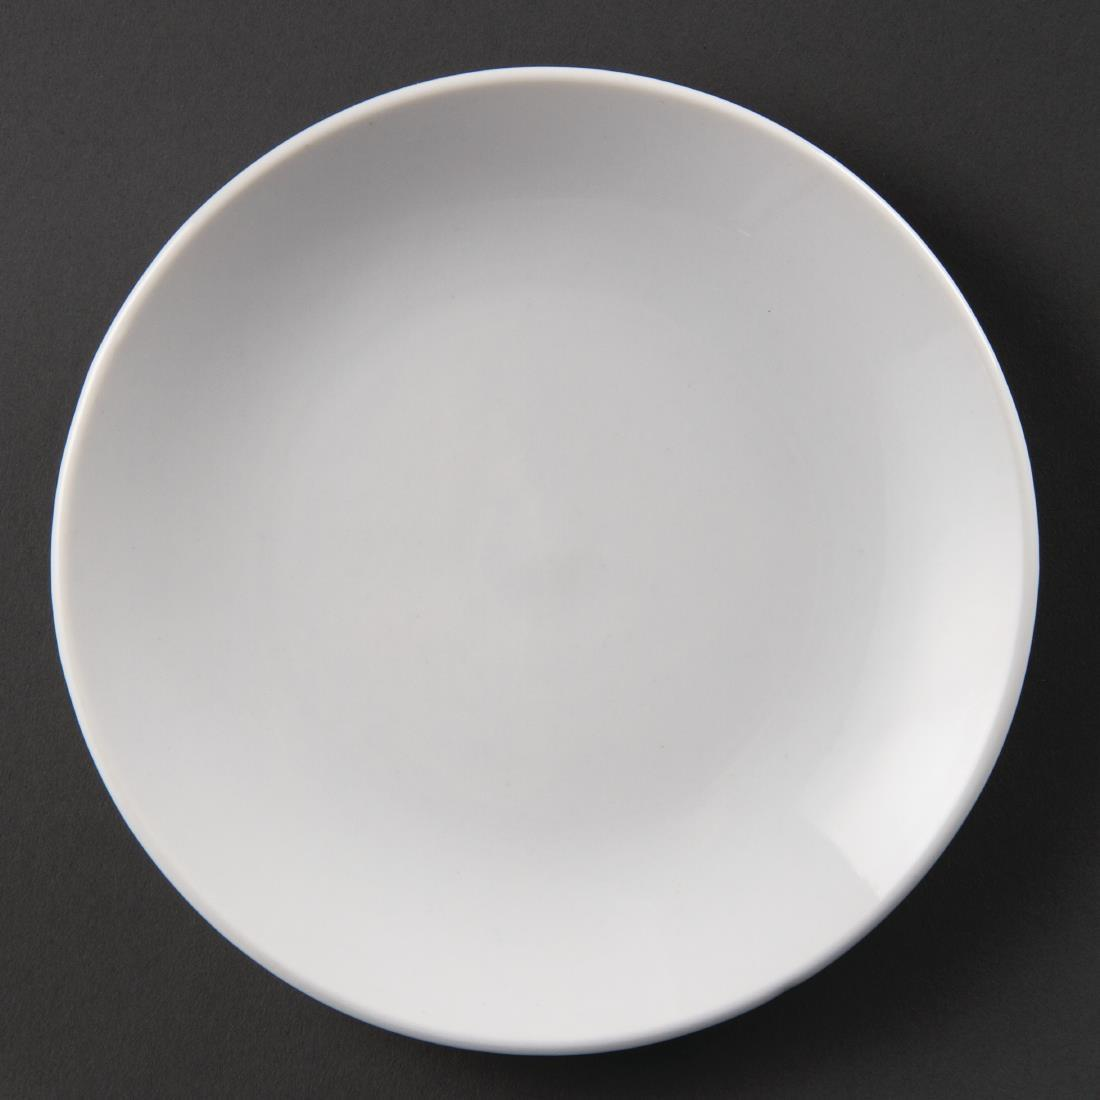 Olympia Whiteware Coupe Plates 150mm